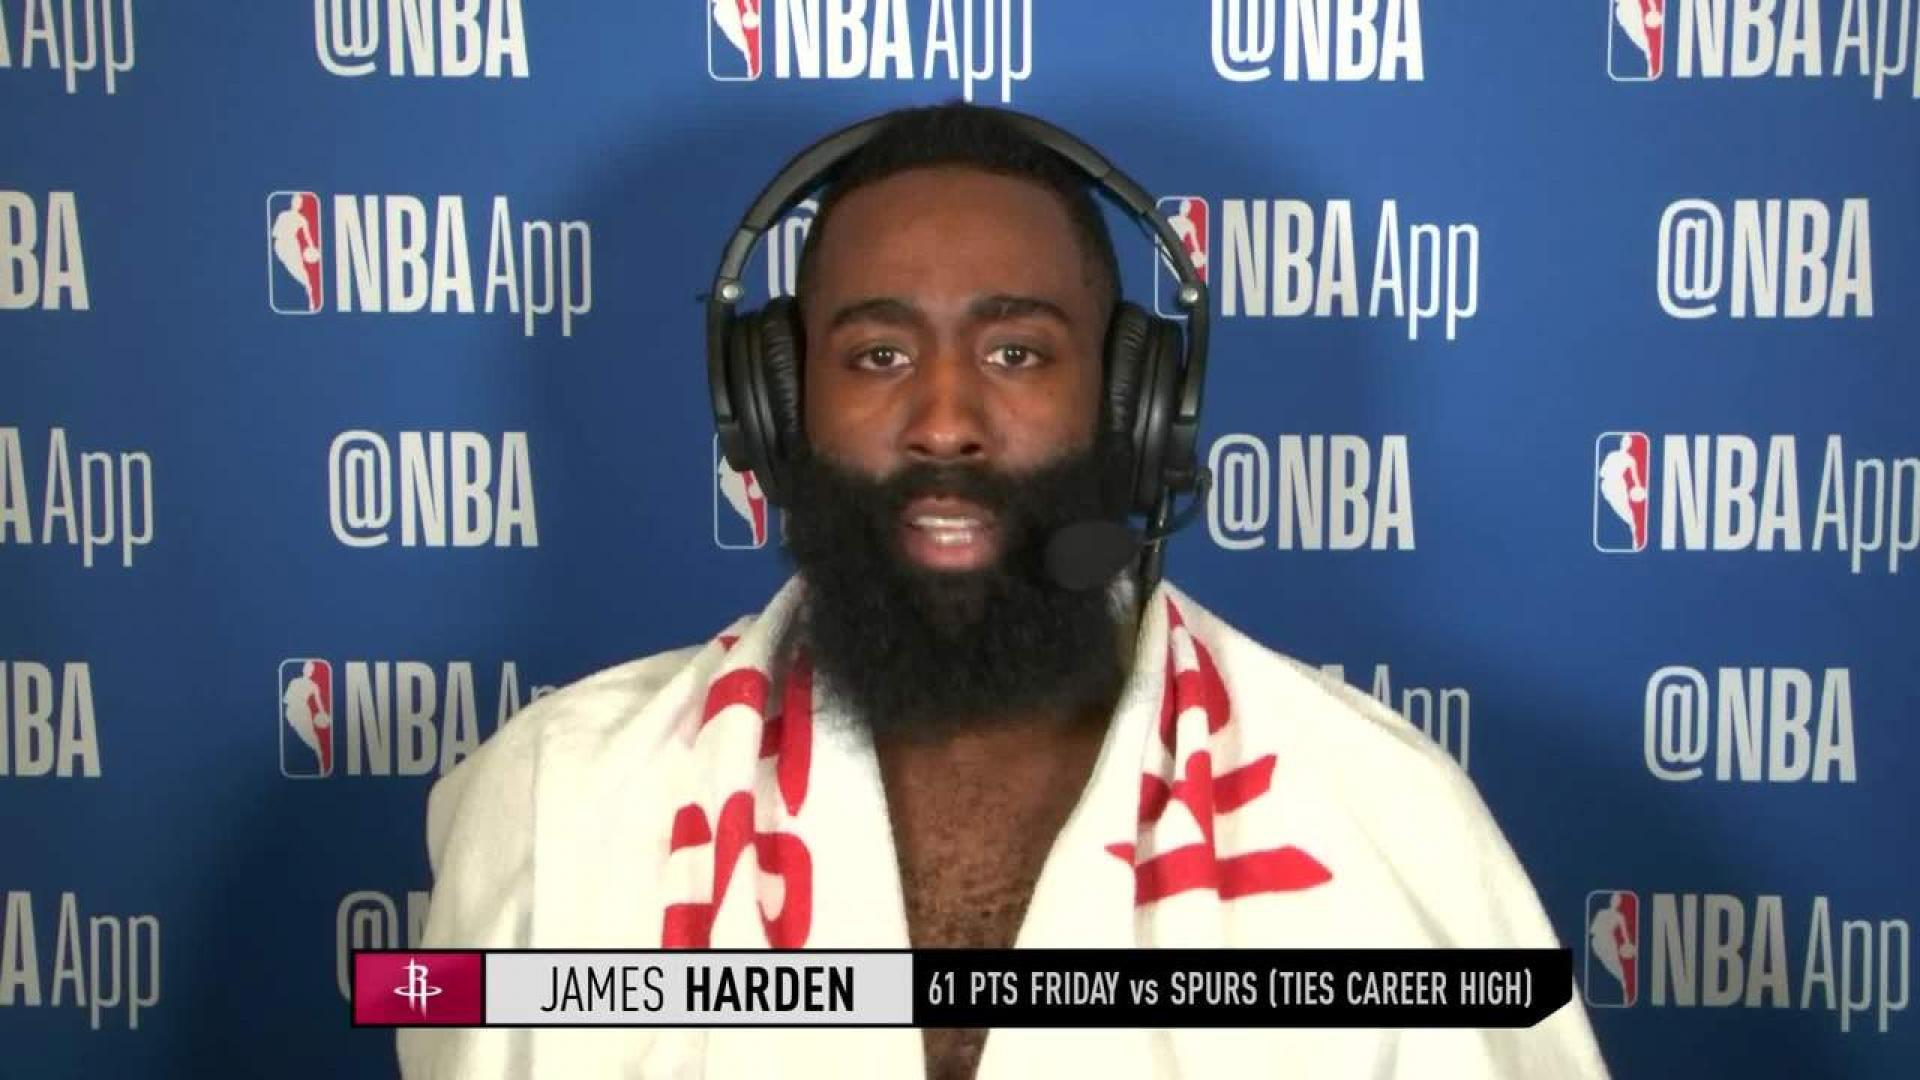 76f88e8acccf Harden Ties Career-High With 61 In Comeback Win